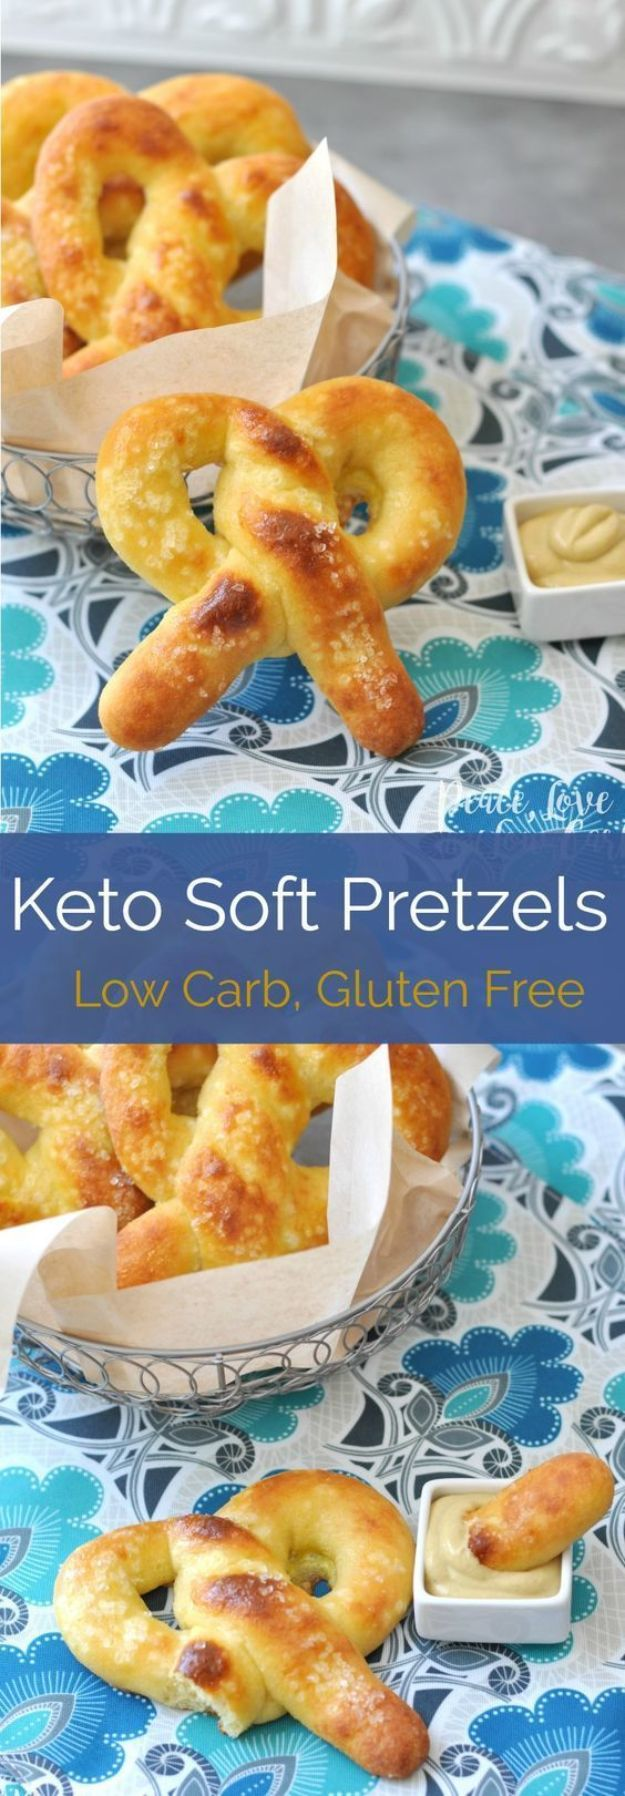 Keto Breakfast Recipes - Keto Soft Pretzel - Low Carb Breakfasts and Morning Meals for the Ketogenic Diet - Low Carbohydrate Foods on the Go - Easy Crockpot Recipes and Casserole - Muffins and Pancakes, Shake and Smoothie, Ideas With No Eggs #keto